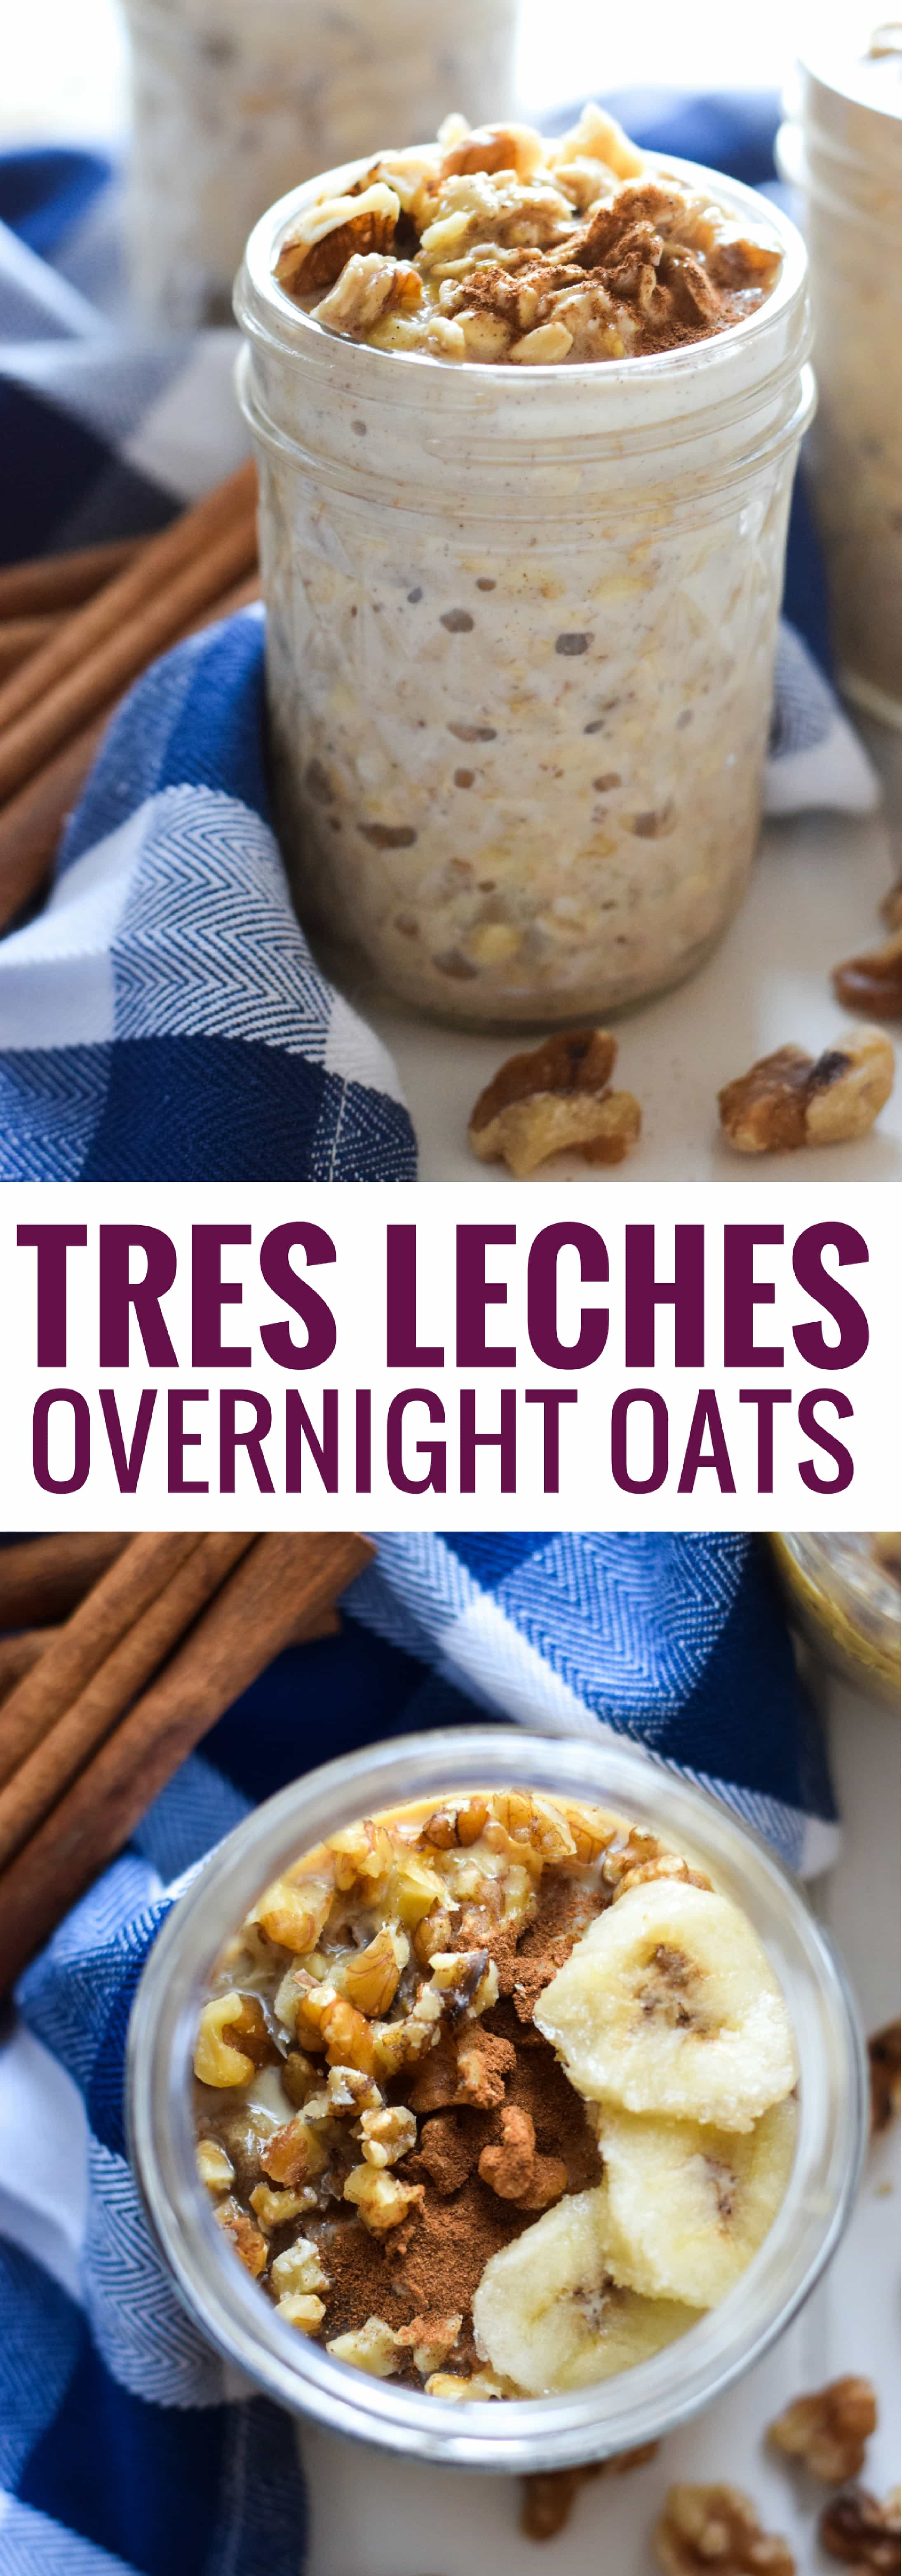 Soaked in three different kinds of milk and topped with chopped walnuts, banana slices and cinnamon, these 5-minute Mexican Tres Leches Overnight Oats are guaranteed to sweeten your mornings.